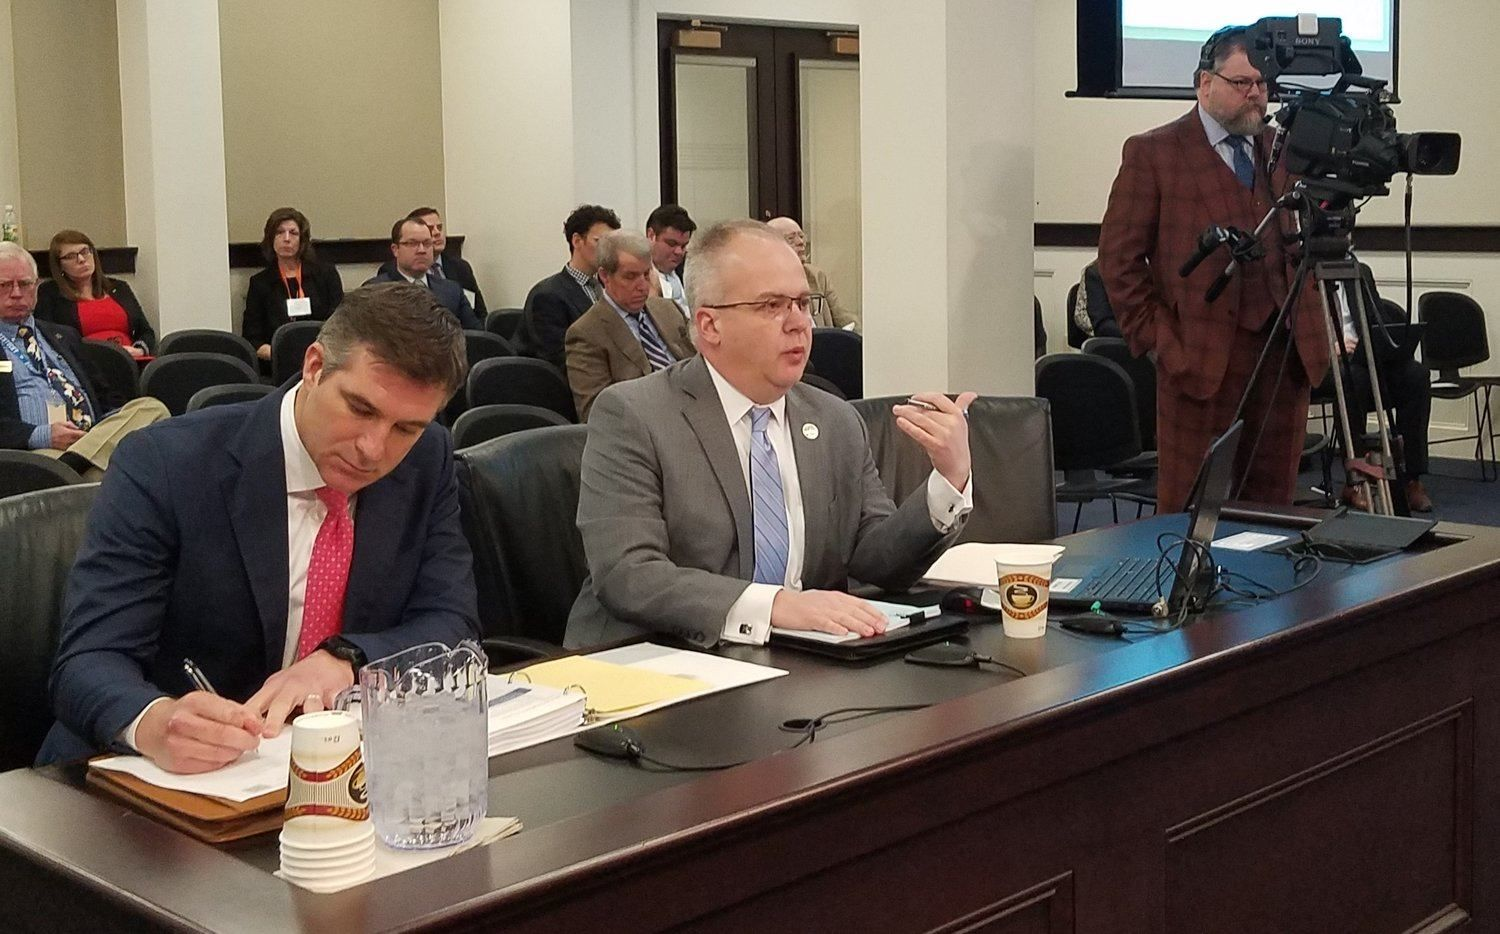 Kentucky Sports Betting Bill Passes House Committee, But